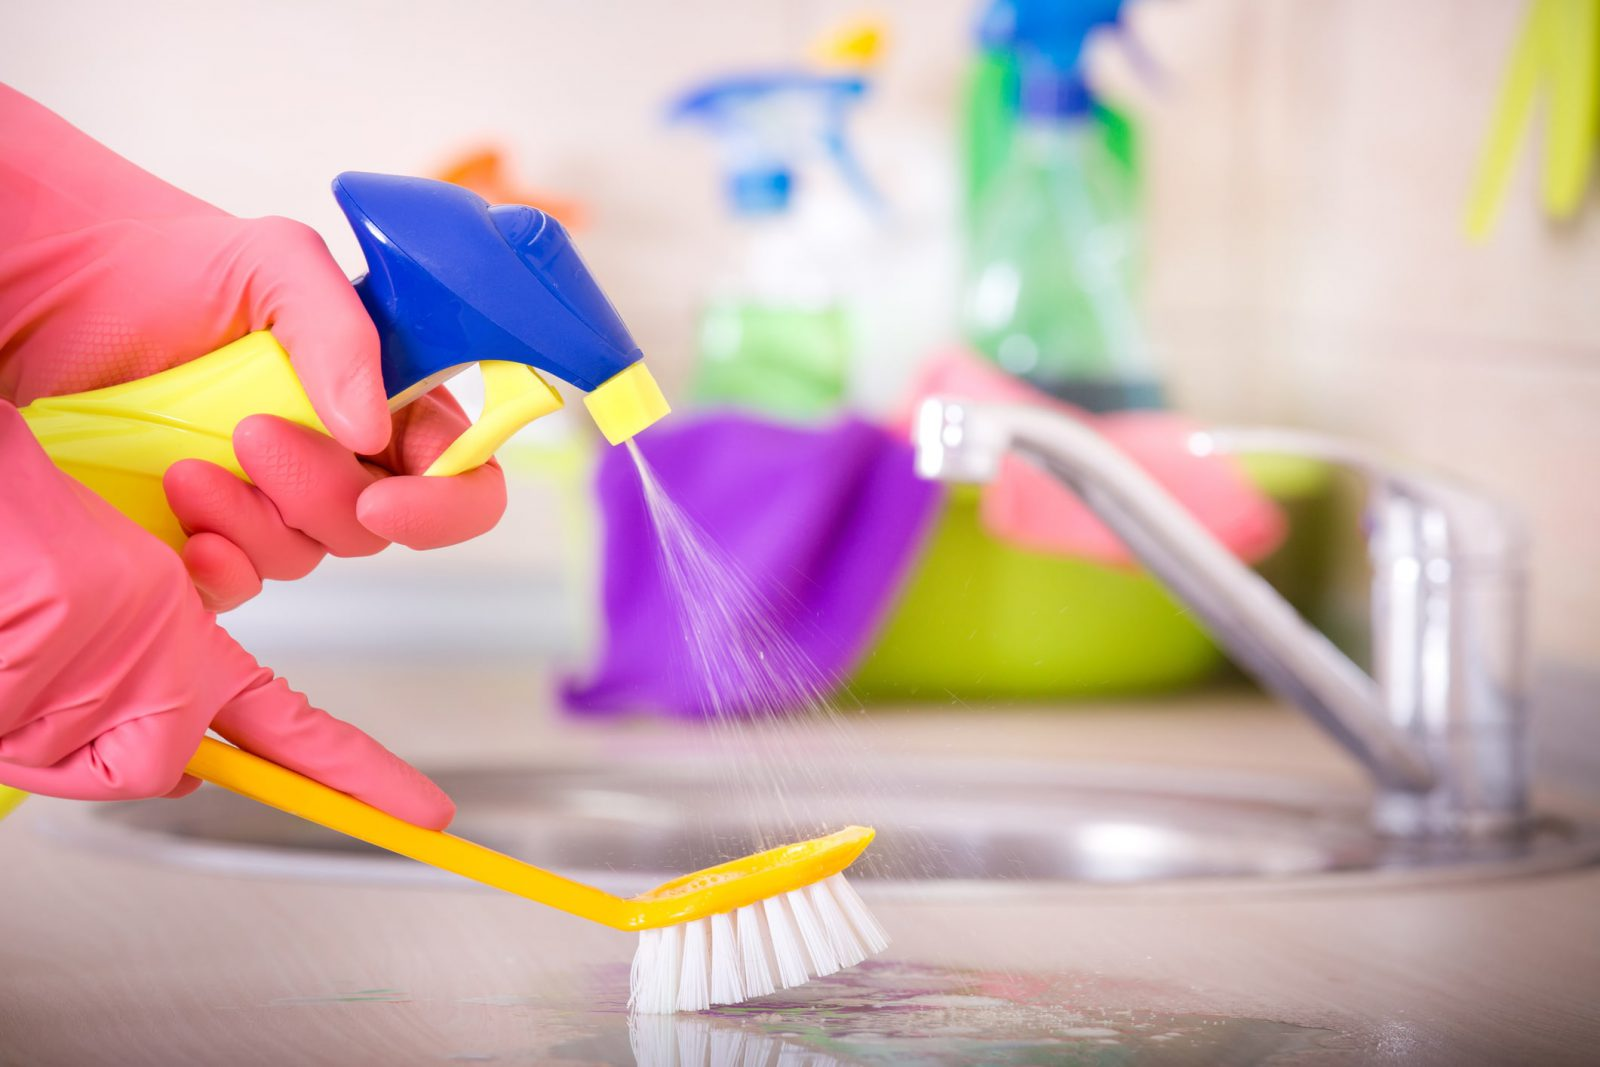 cleaning a kitchen countertop by house cleaning services in Mount Prospect